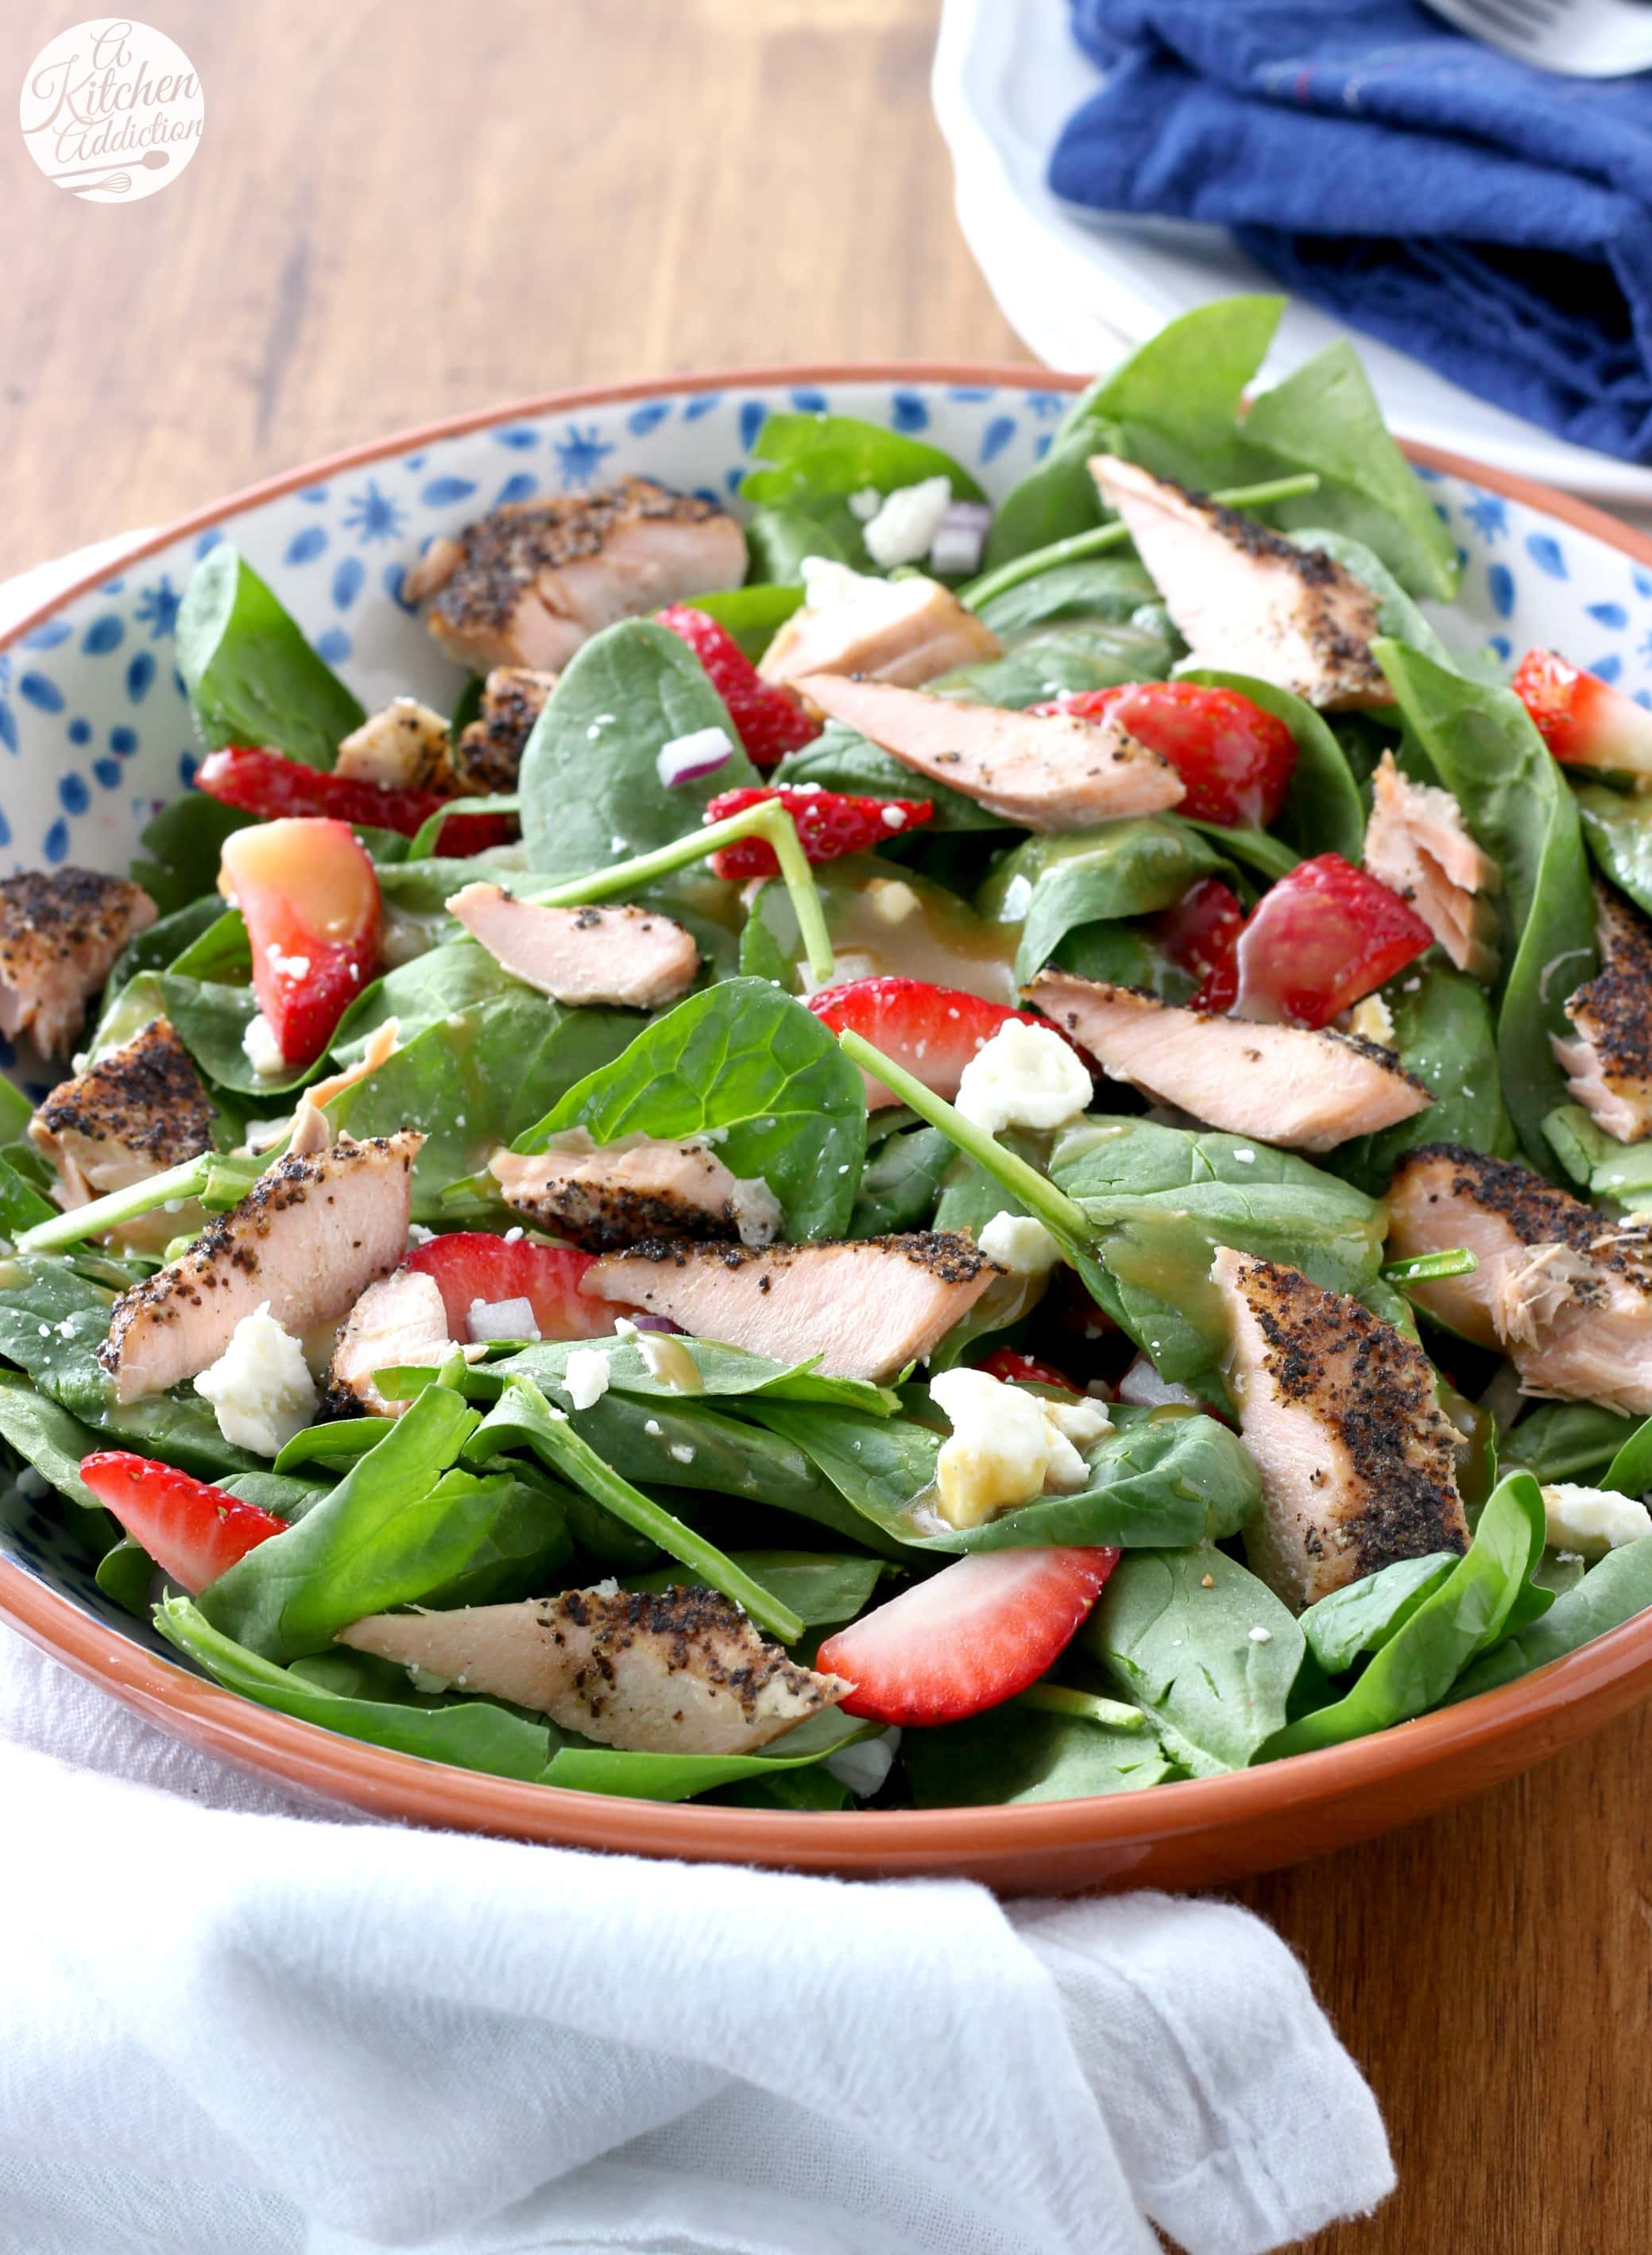 25 Minute Baked Salmon Strawberry Spinach Salad with Honey Dijon Vinaigrette Recipe from A Kitchen Addiction